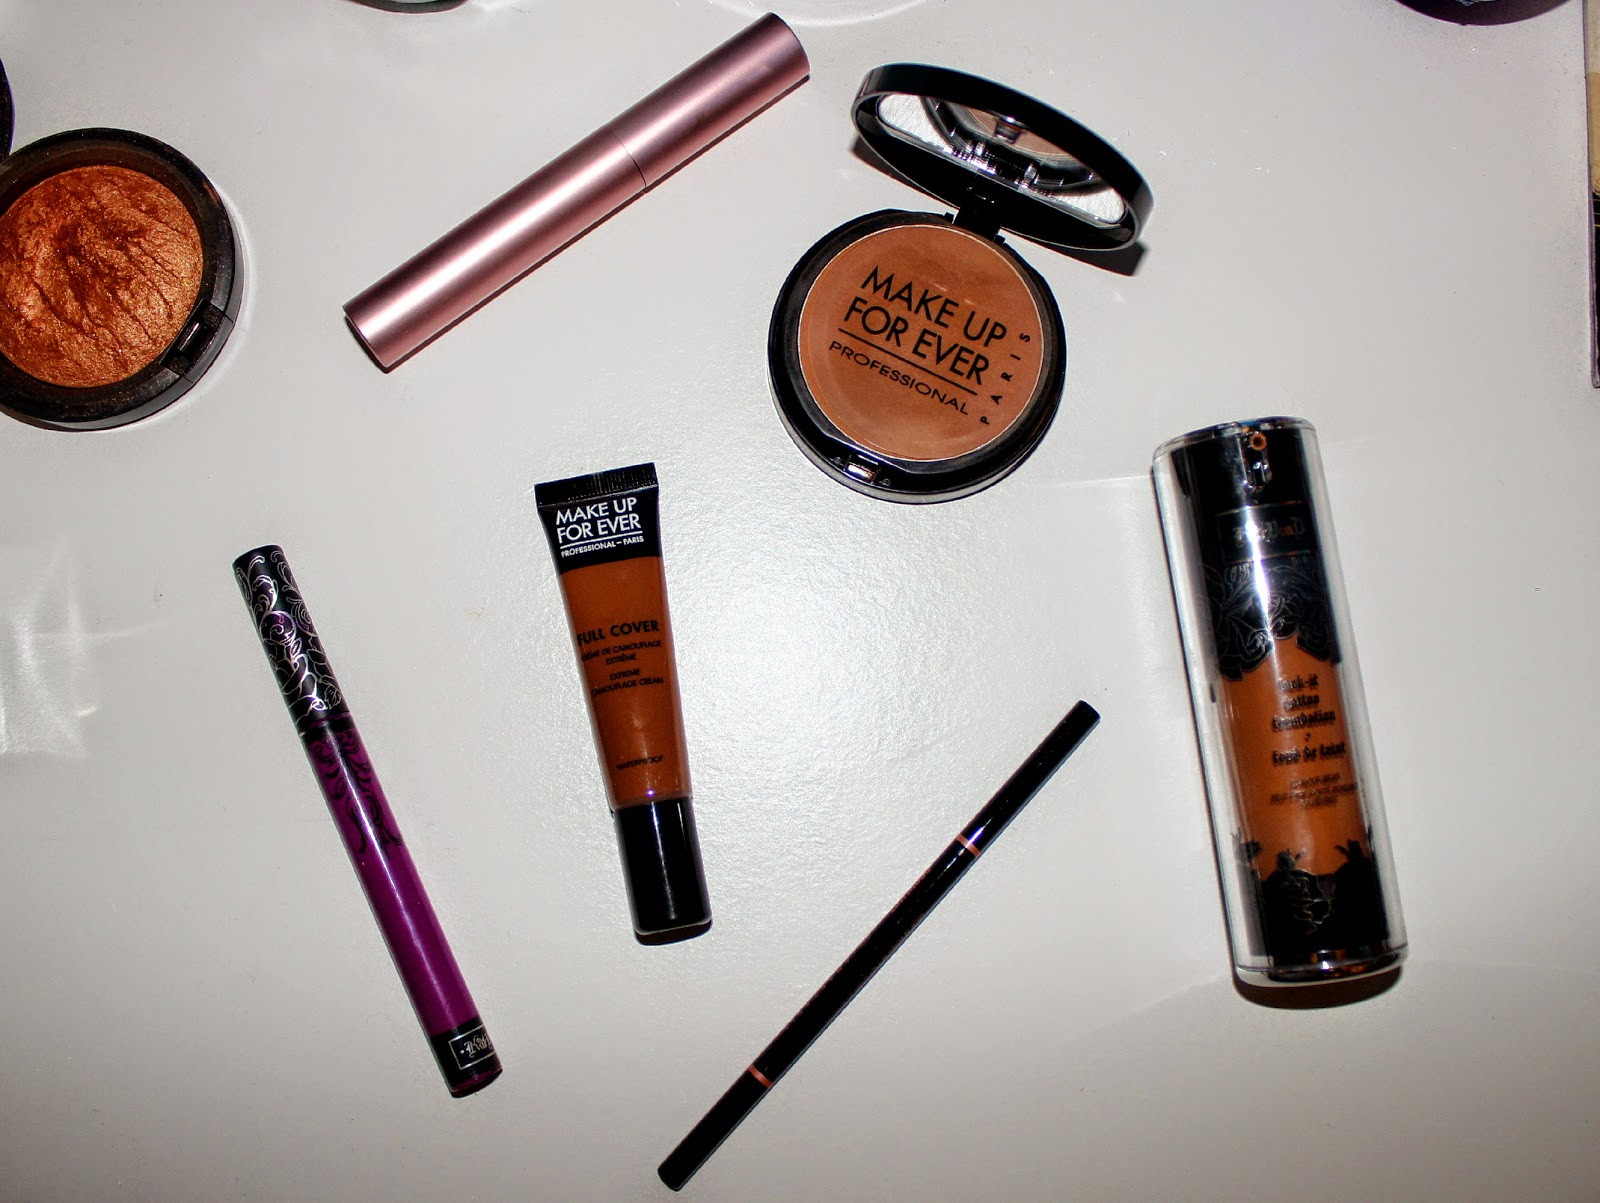 kat von d liquid lipstick kat von d lock it foundation make up for ever full cover concealer too faced better than sex mascara anastasia beverley hills brow whiz